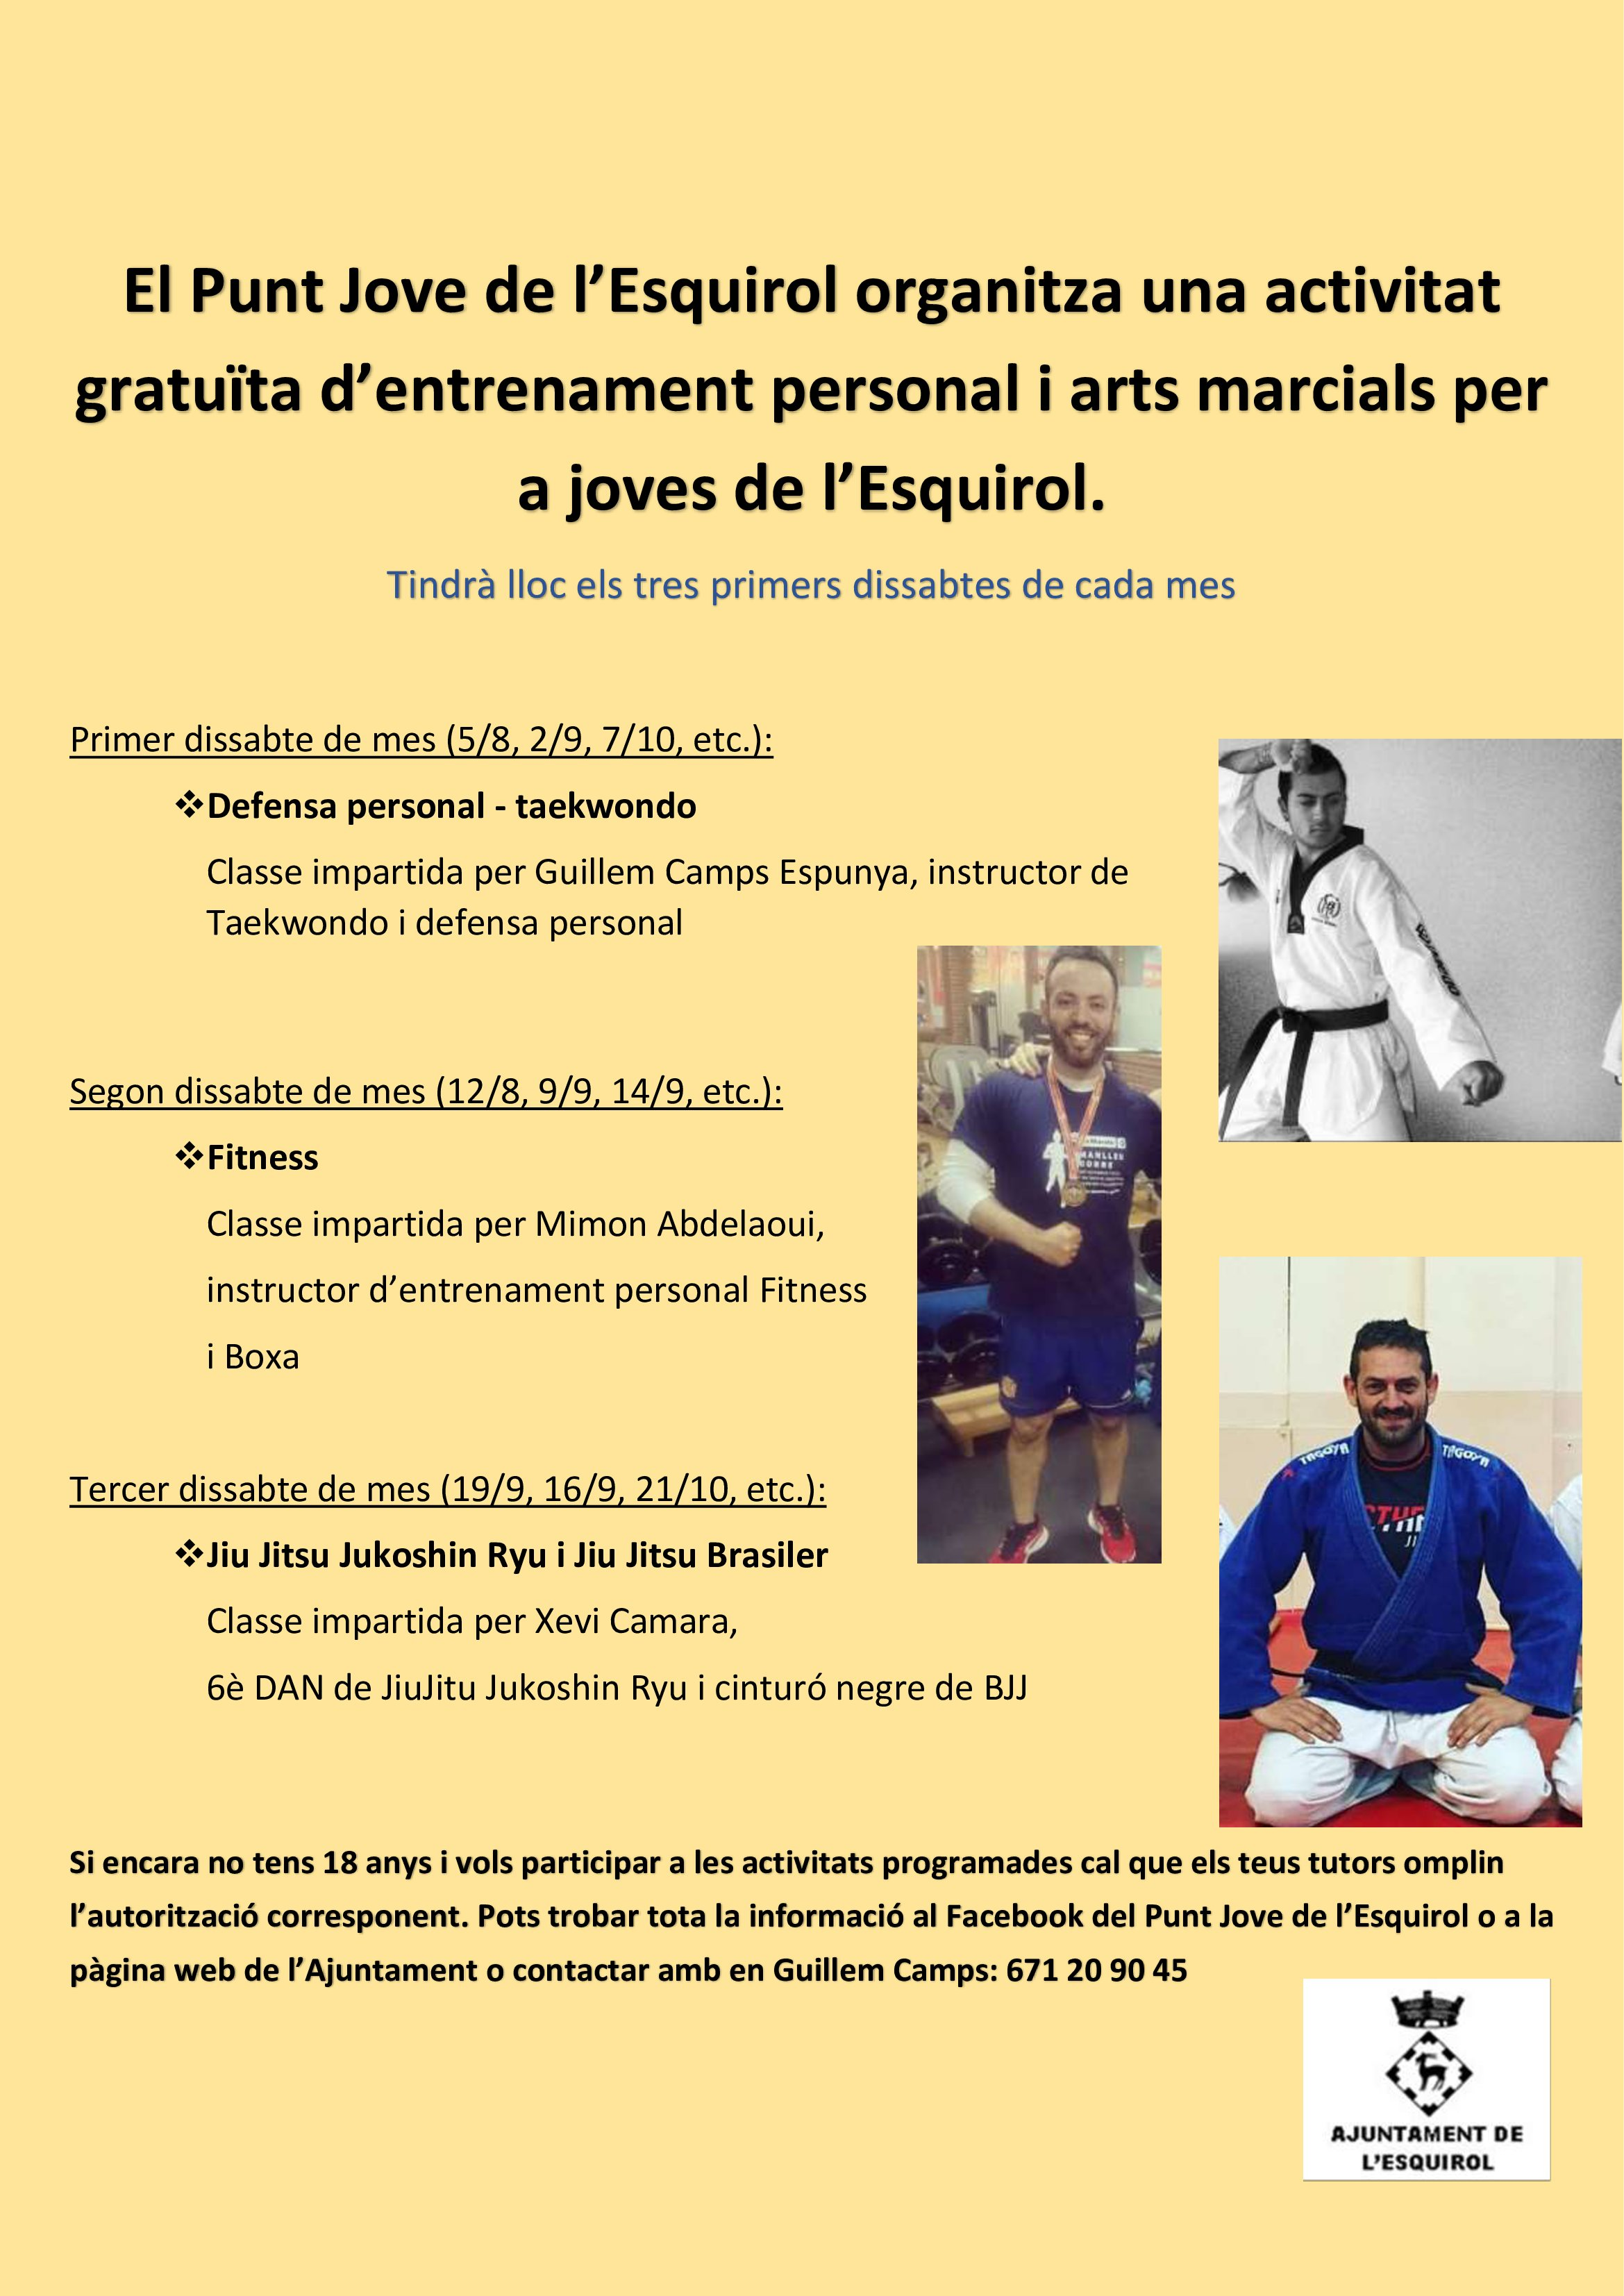 Classes d'entrenament personal